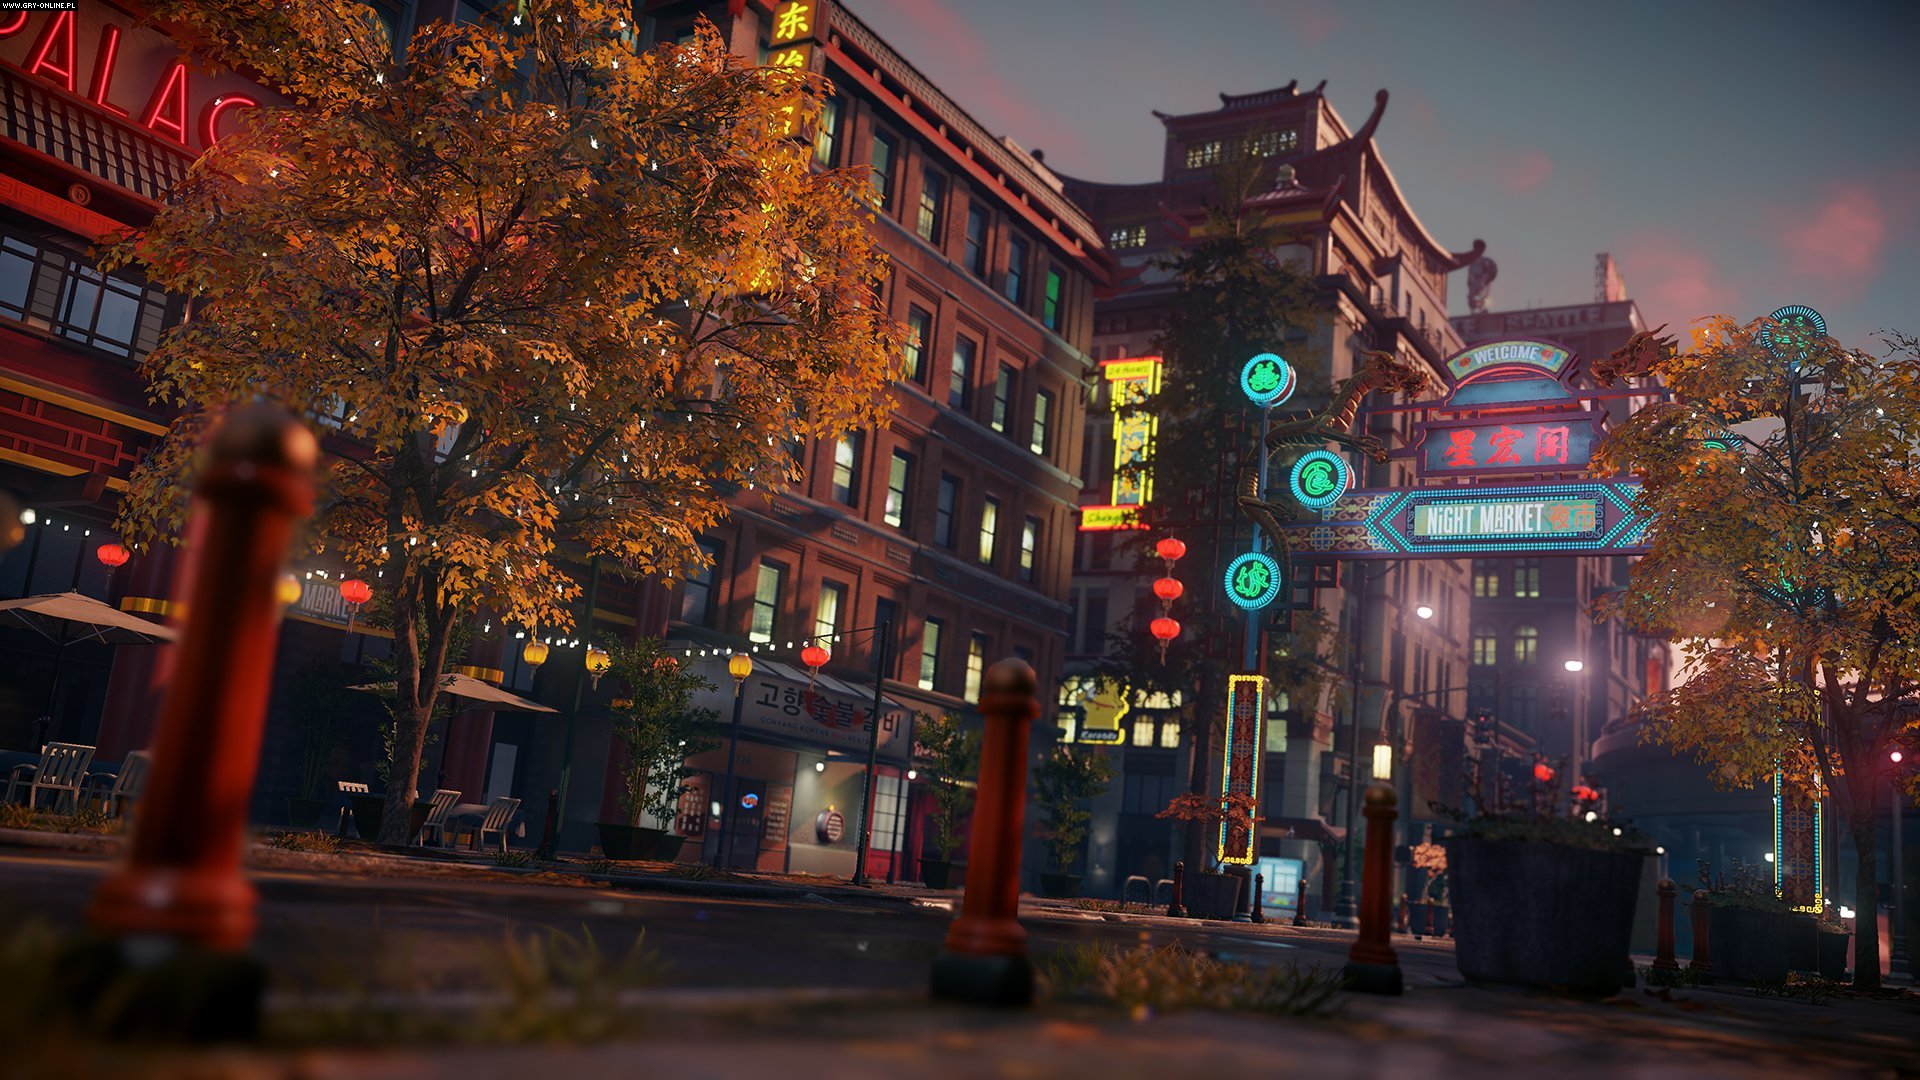 inFamous: Second Son PS4 Games Image 4/138, Sucker Punch, Sony Interactive Entertainment